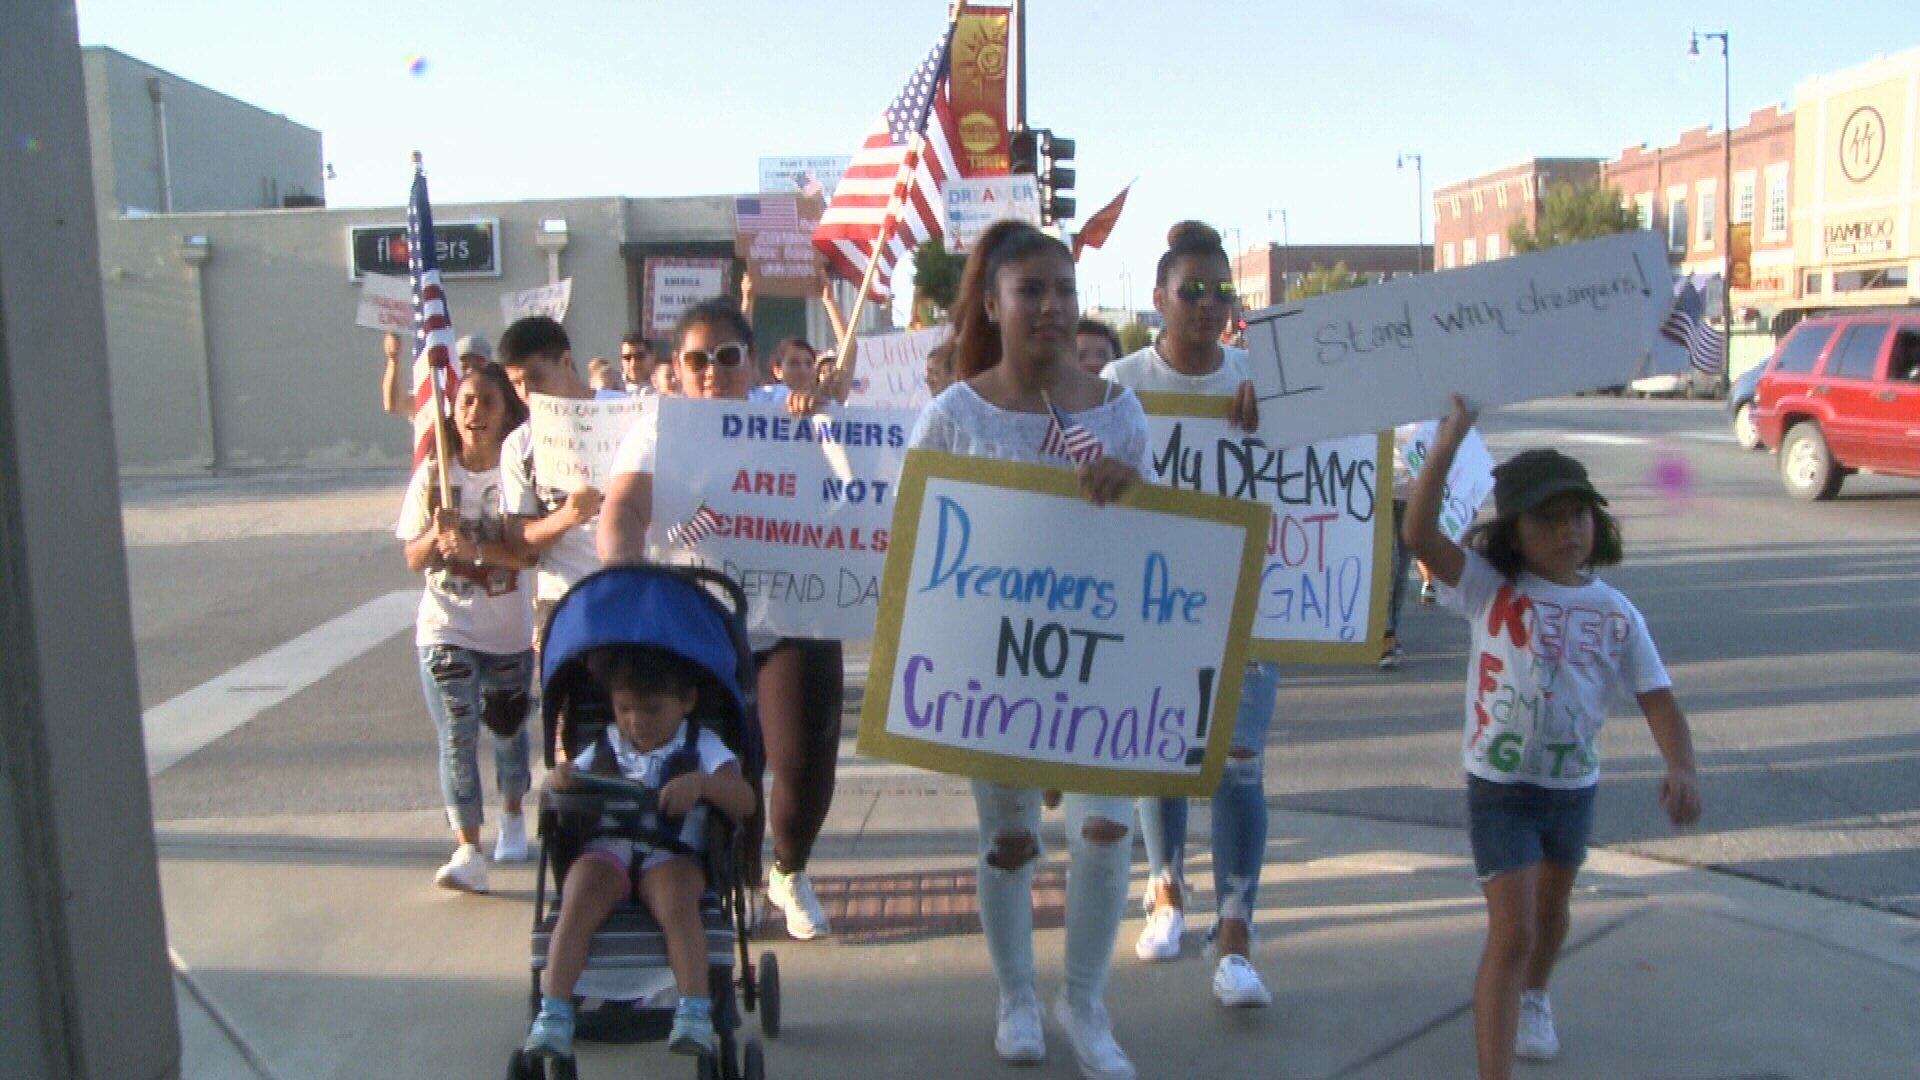 Residents in Pittsburg, Kansas came together to rally against President Trump's order rescinding the Deferred Action for Childhood Arrivals or DACA program.